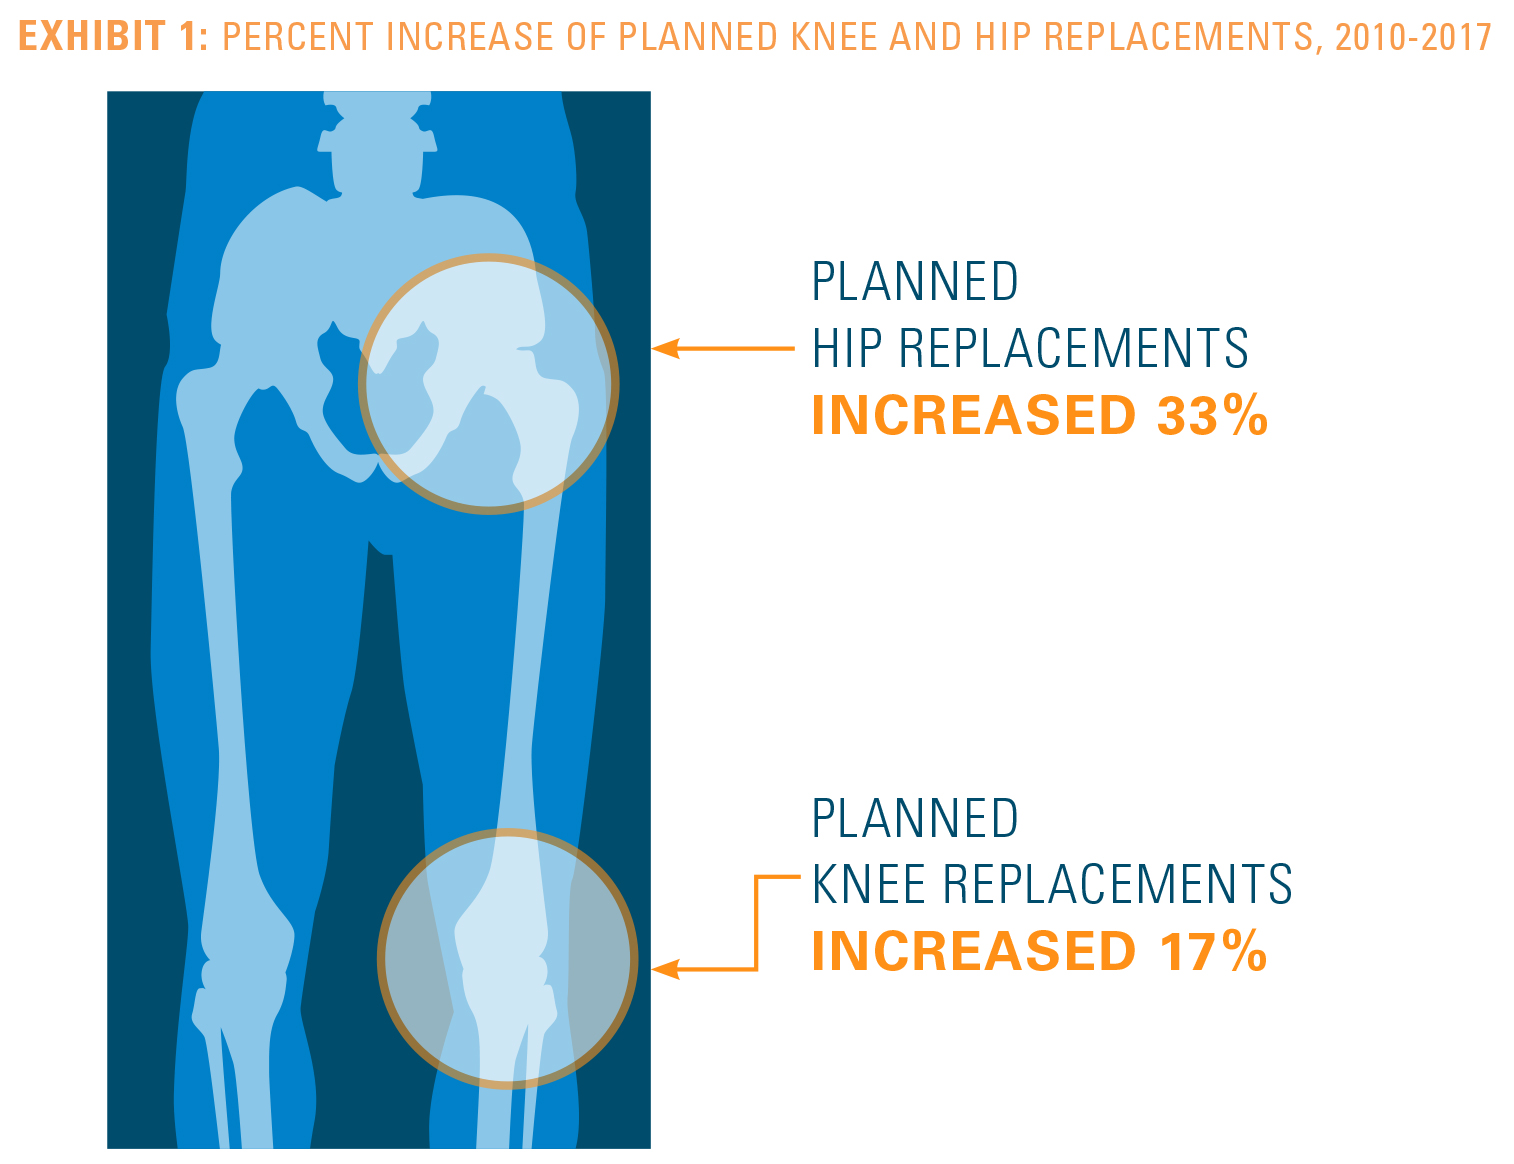 EXHIBIT 1: PERCENT INCREASE OF PLANNED KNEE AND HIP REPLACEMENTS, 2010-2017